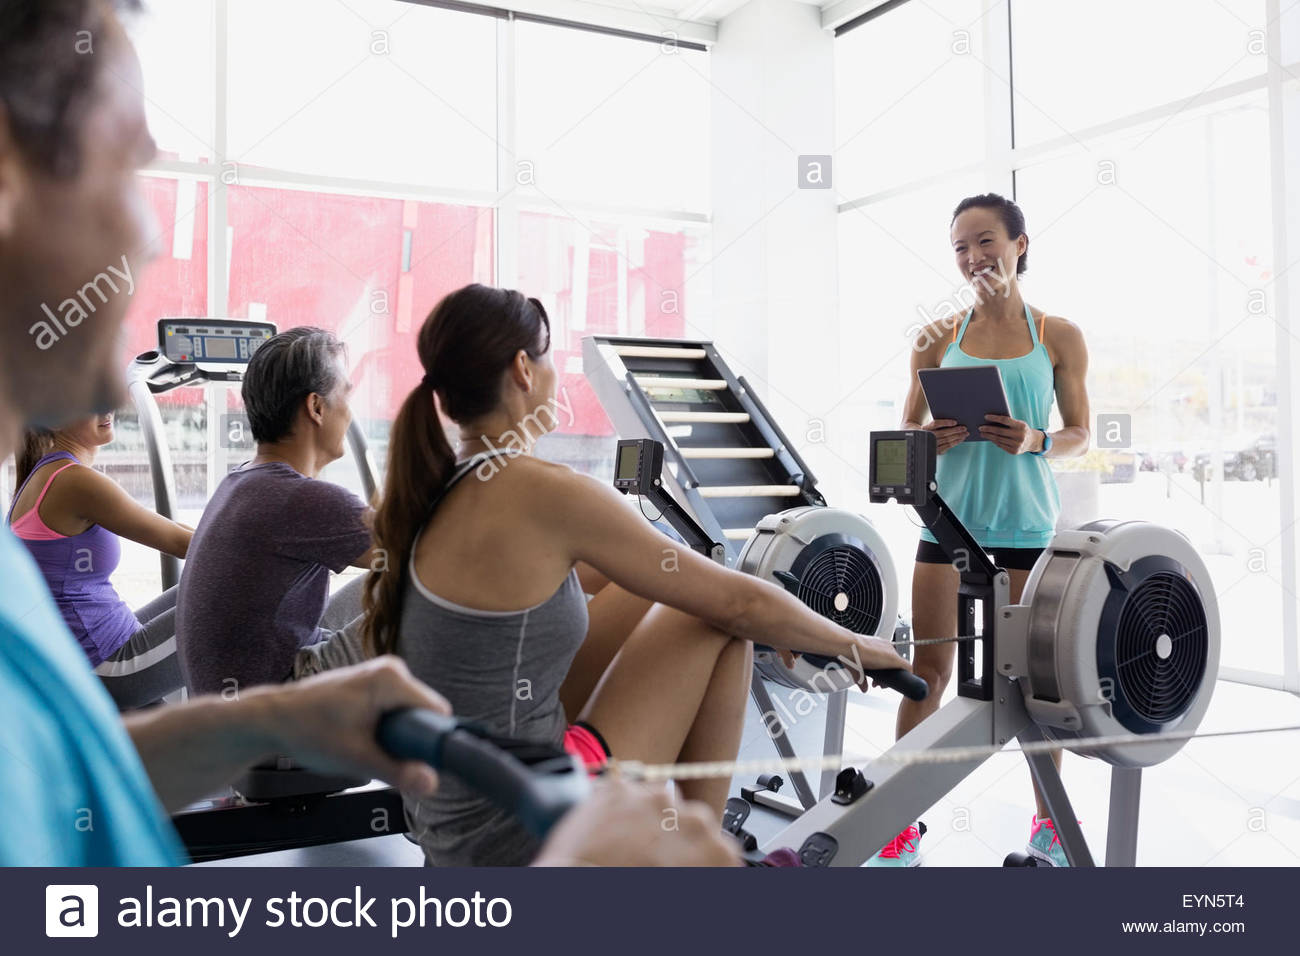 Fitness instructor with digital tablet guiding rowing class - Stock Image